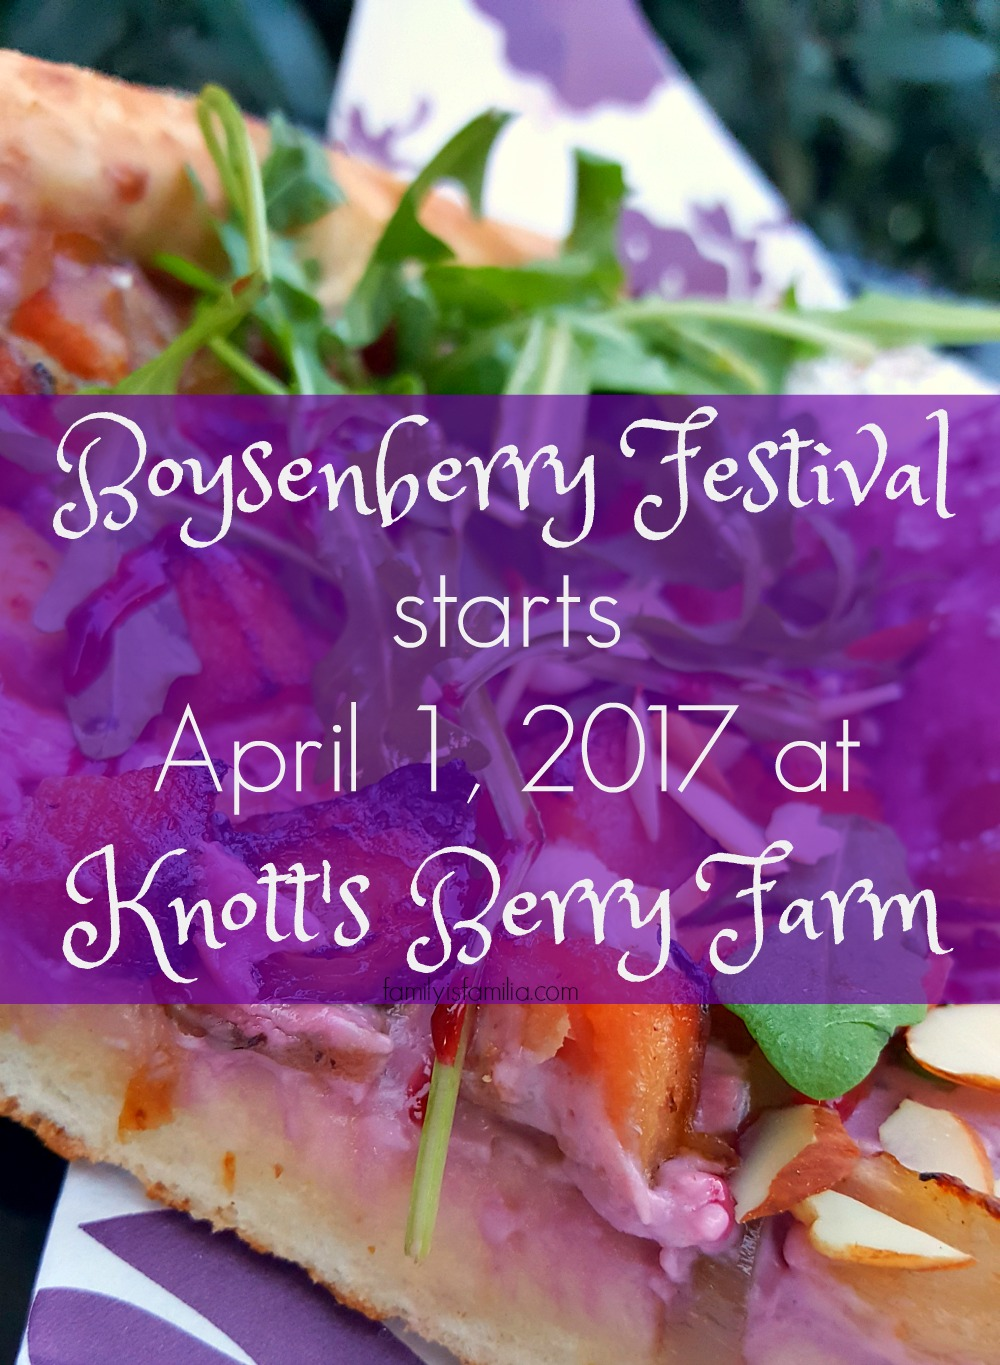 boysenberry-festival-starts-april-1-2017-at-knotts-berry-farm